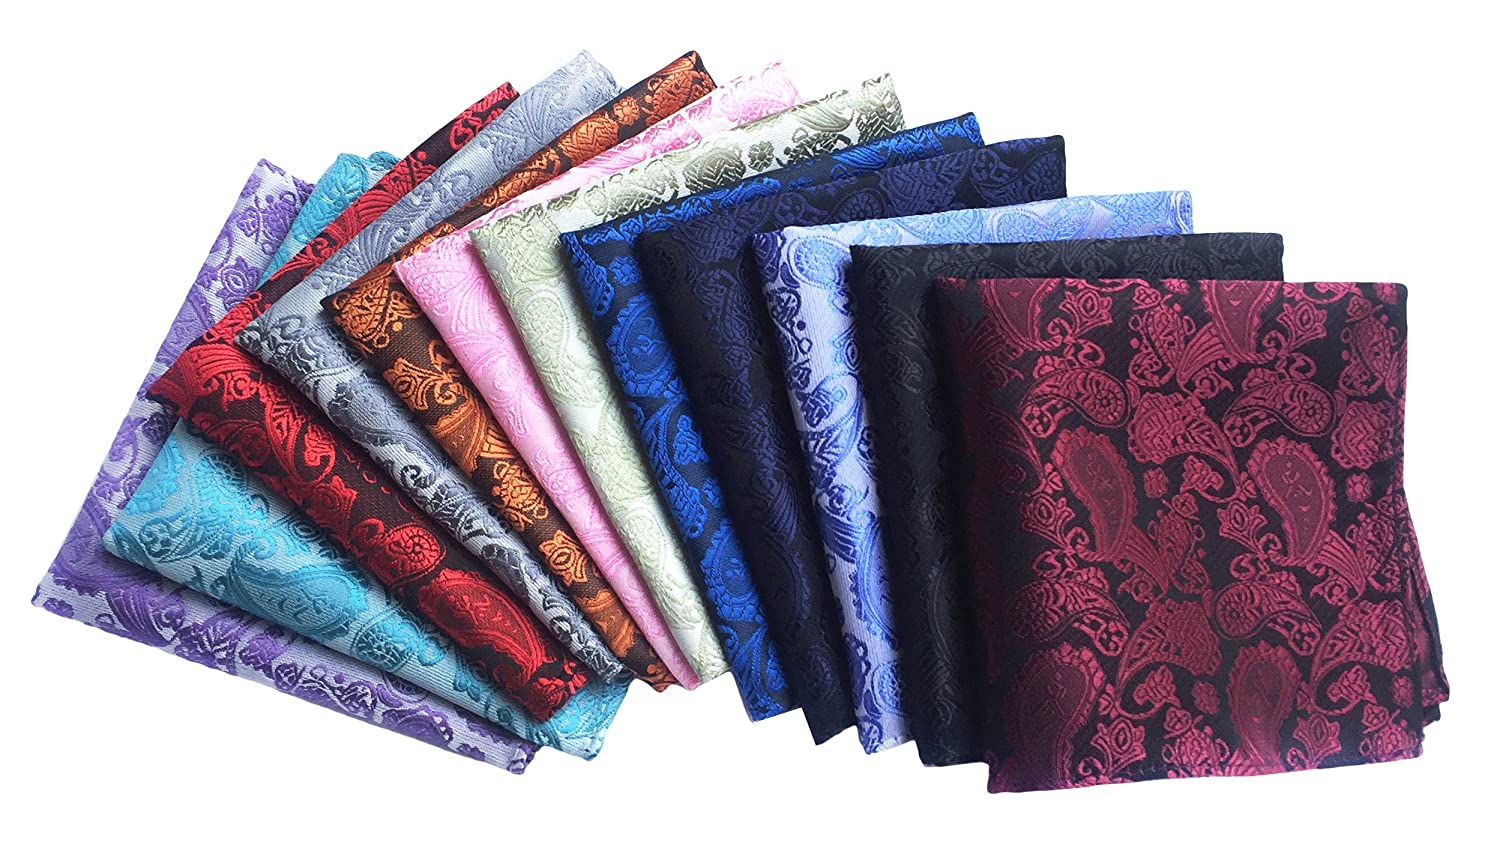 MENDENG Men's 12 Pack Handkerchief Paisley Pocket Square Wedding Party Hanky ENG0830